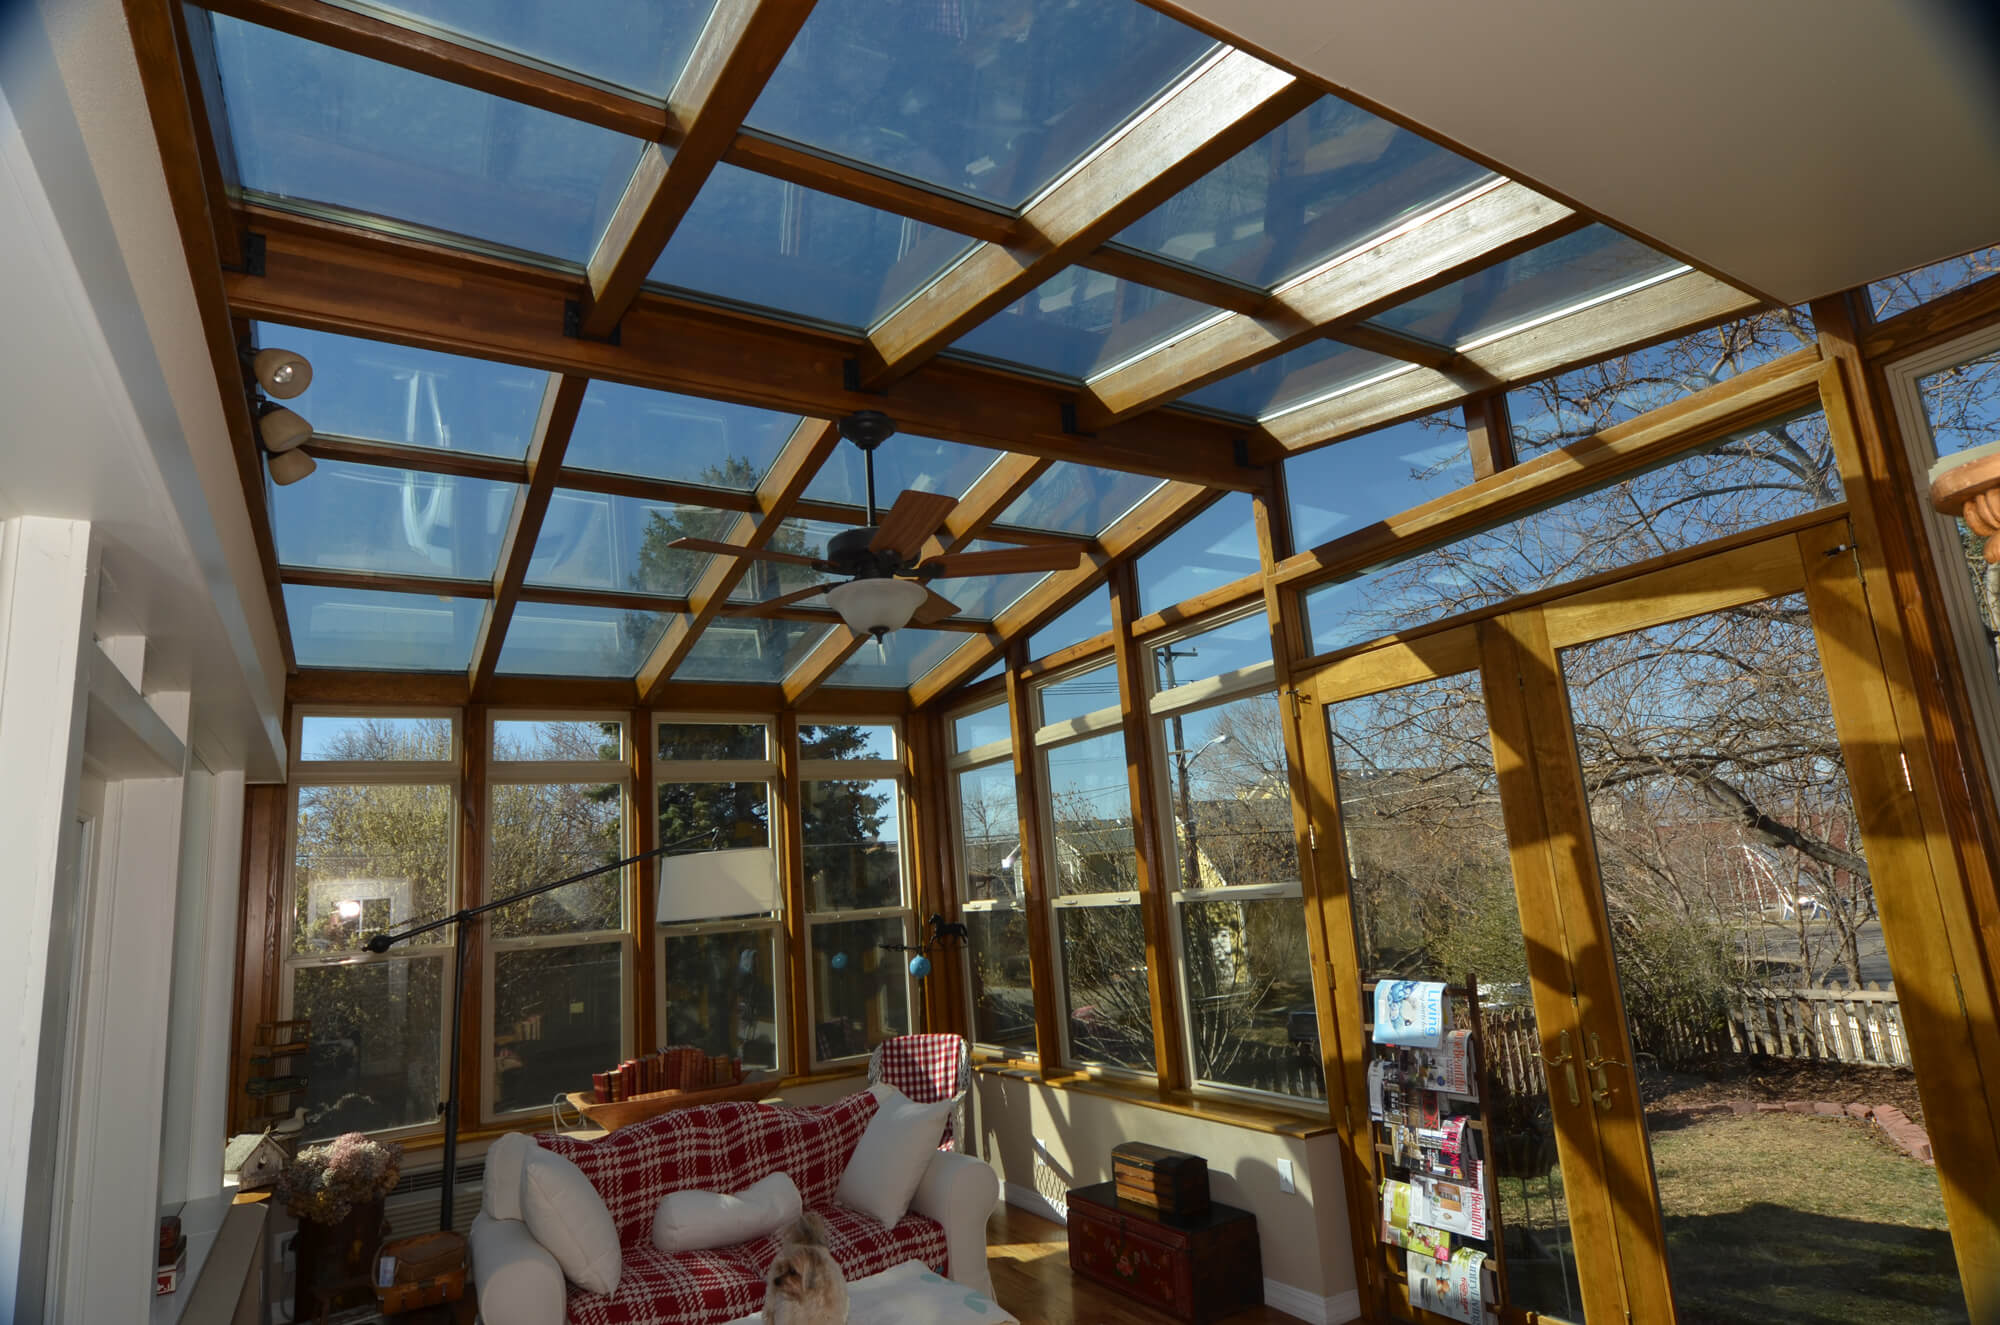 colorado_sunroom_and_window_builders_in_colorado.jpg